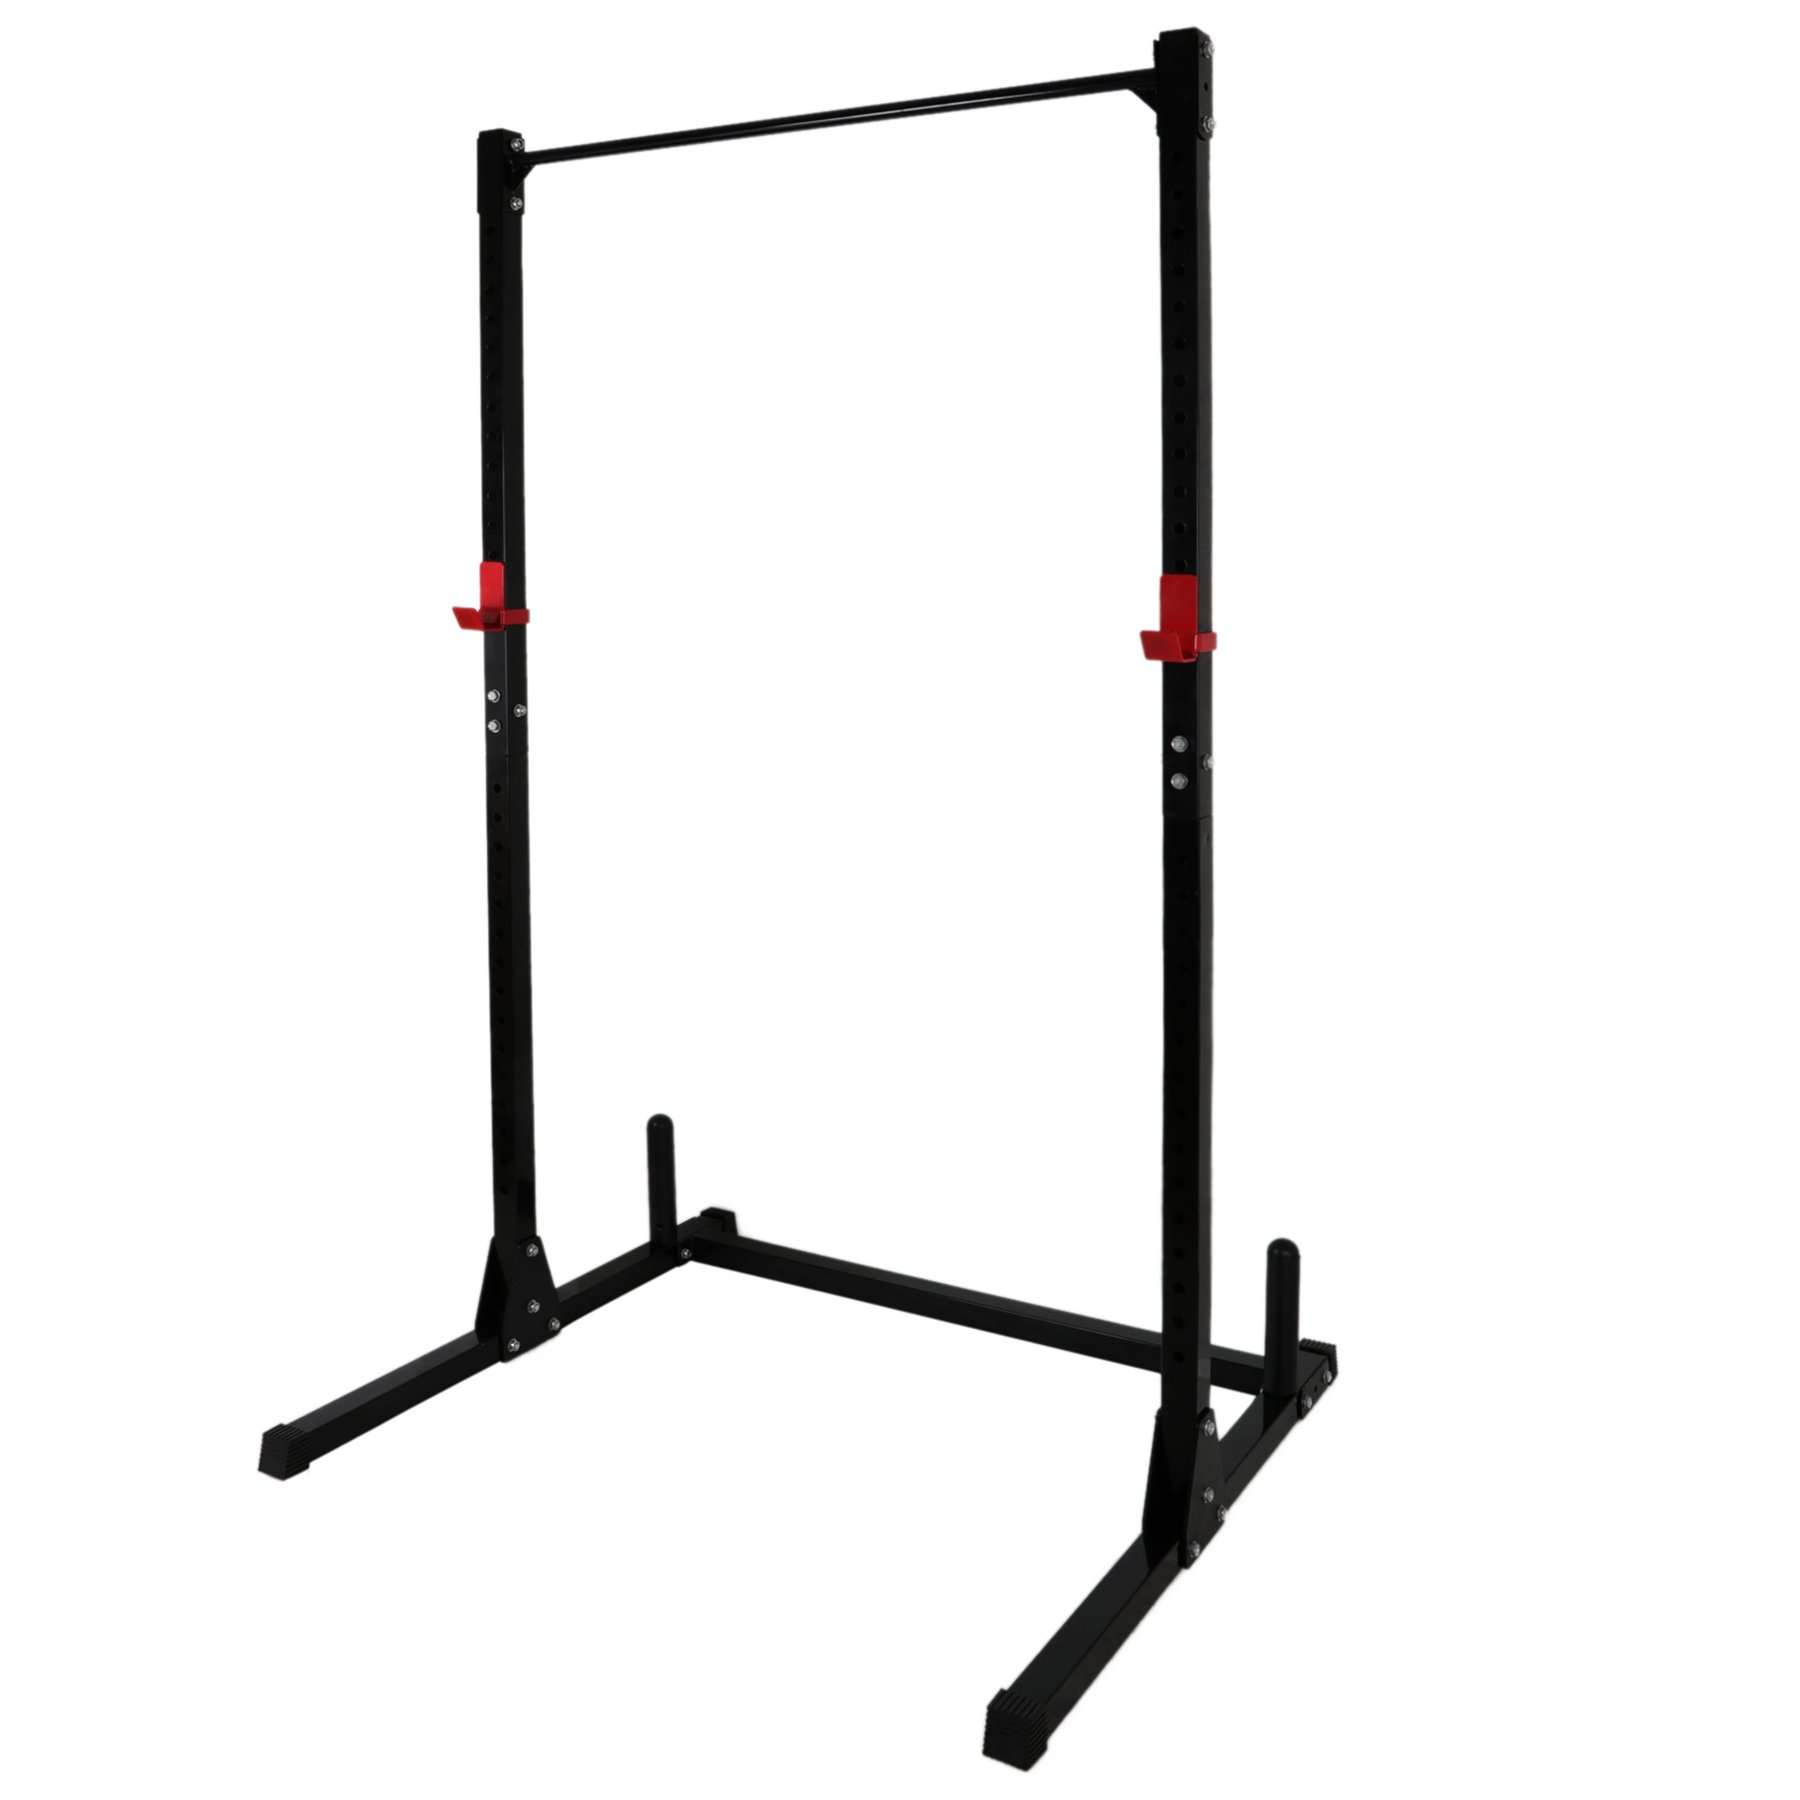 F2C Adjustable Height Power Squat Rack Cage Stand System Strength Deadlift Power Lifting Weightlifting Rack W/Pull up Bar Exercise Stand Squat Rack Bench Curl Weight Stand by F2C (Image #4)